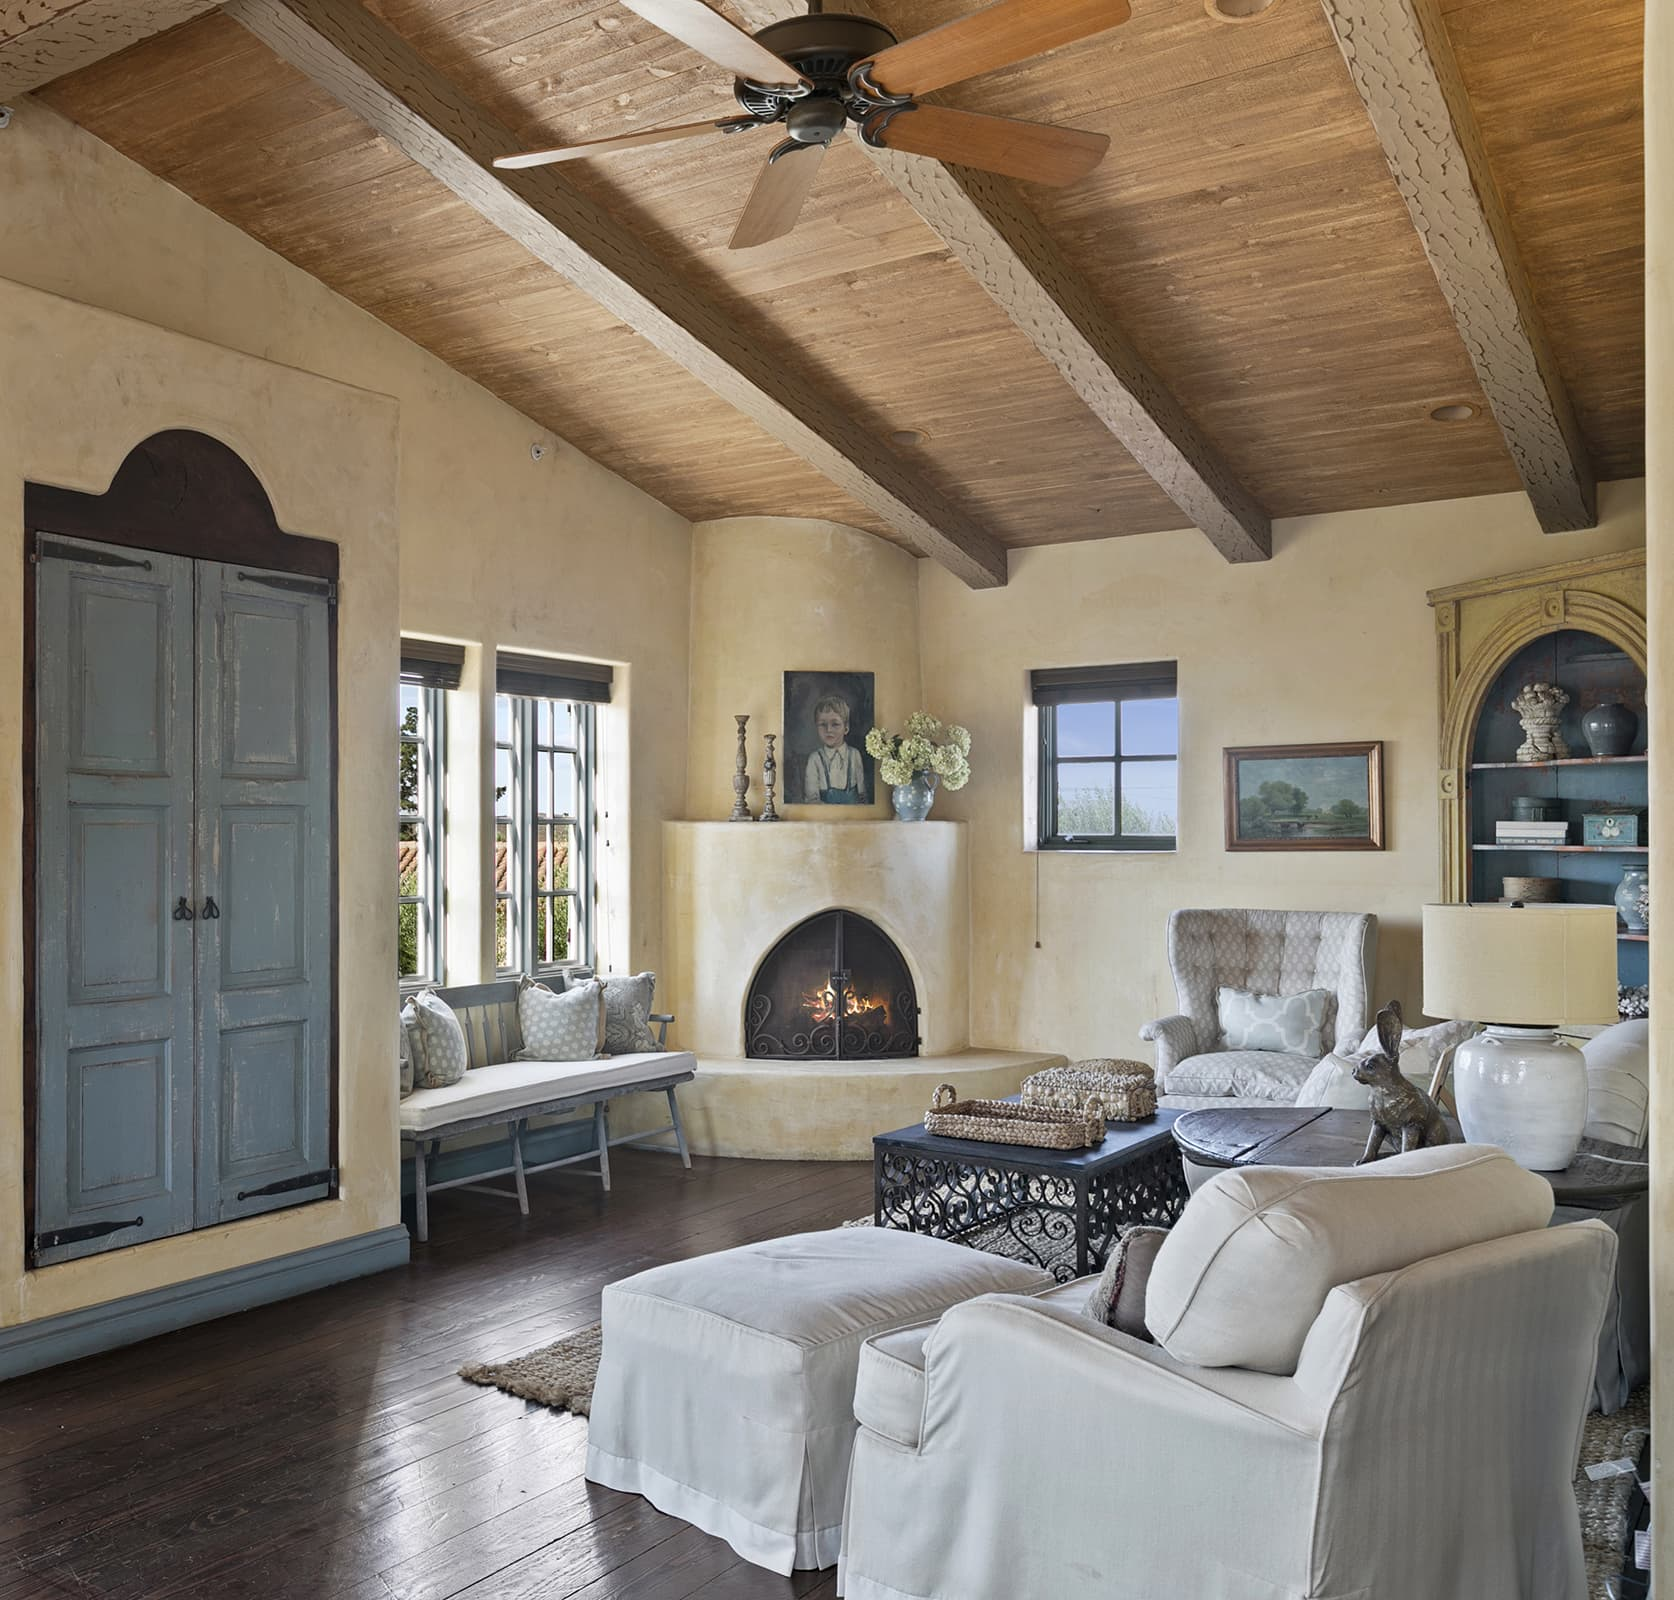 cindy hattersley's master bedroom in her spanish colonial